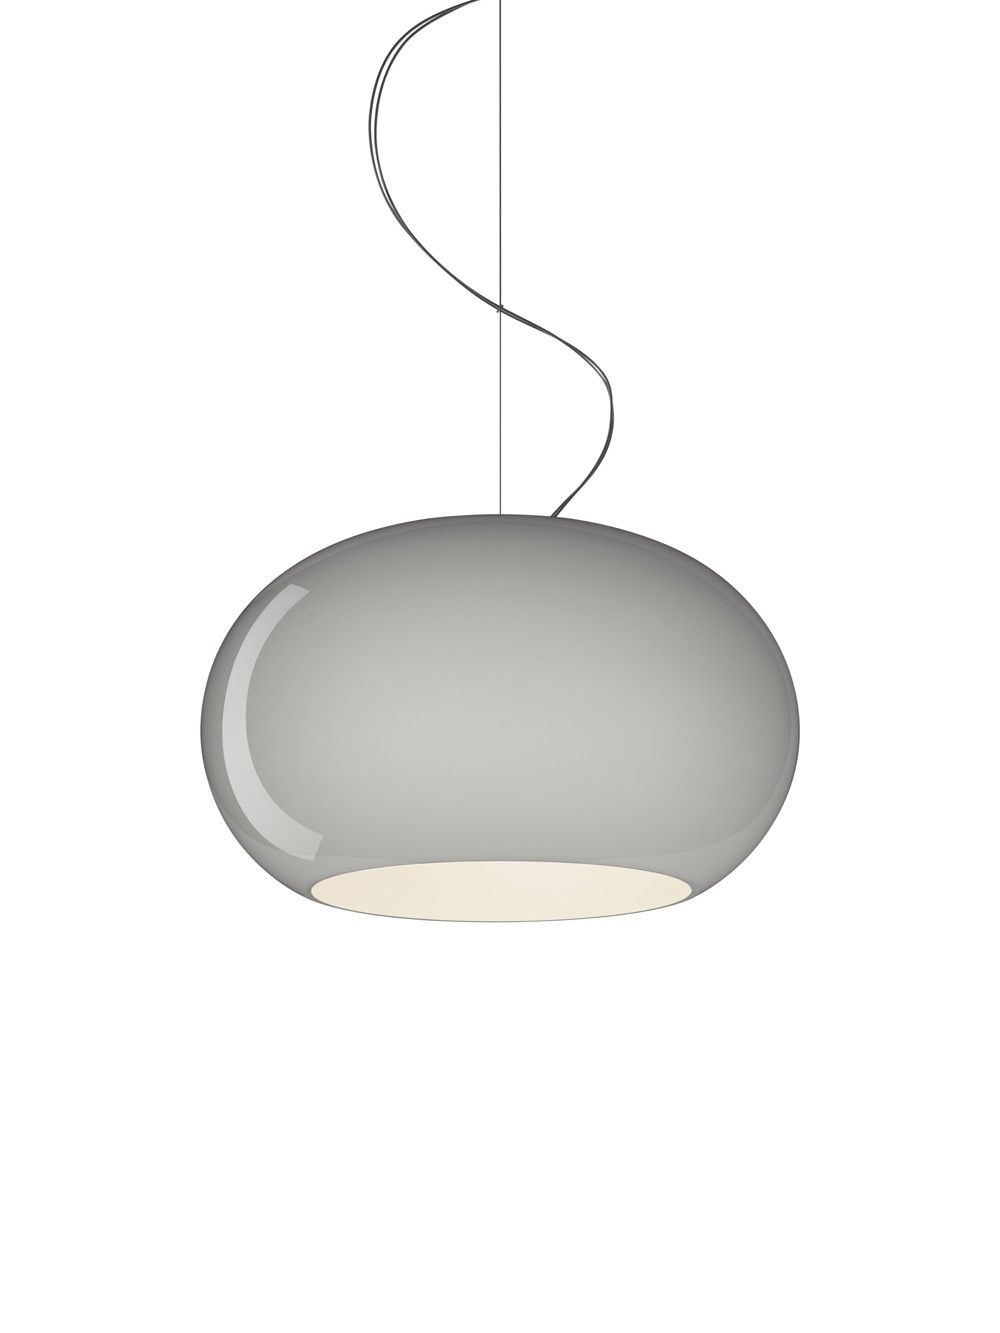 Foscarini Buds 2 Suspension Lamp En 2020 Lampe Suspension Verre Soufflé Source Lumineuse